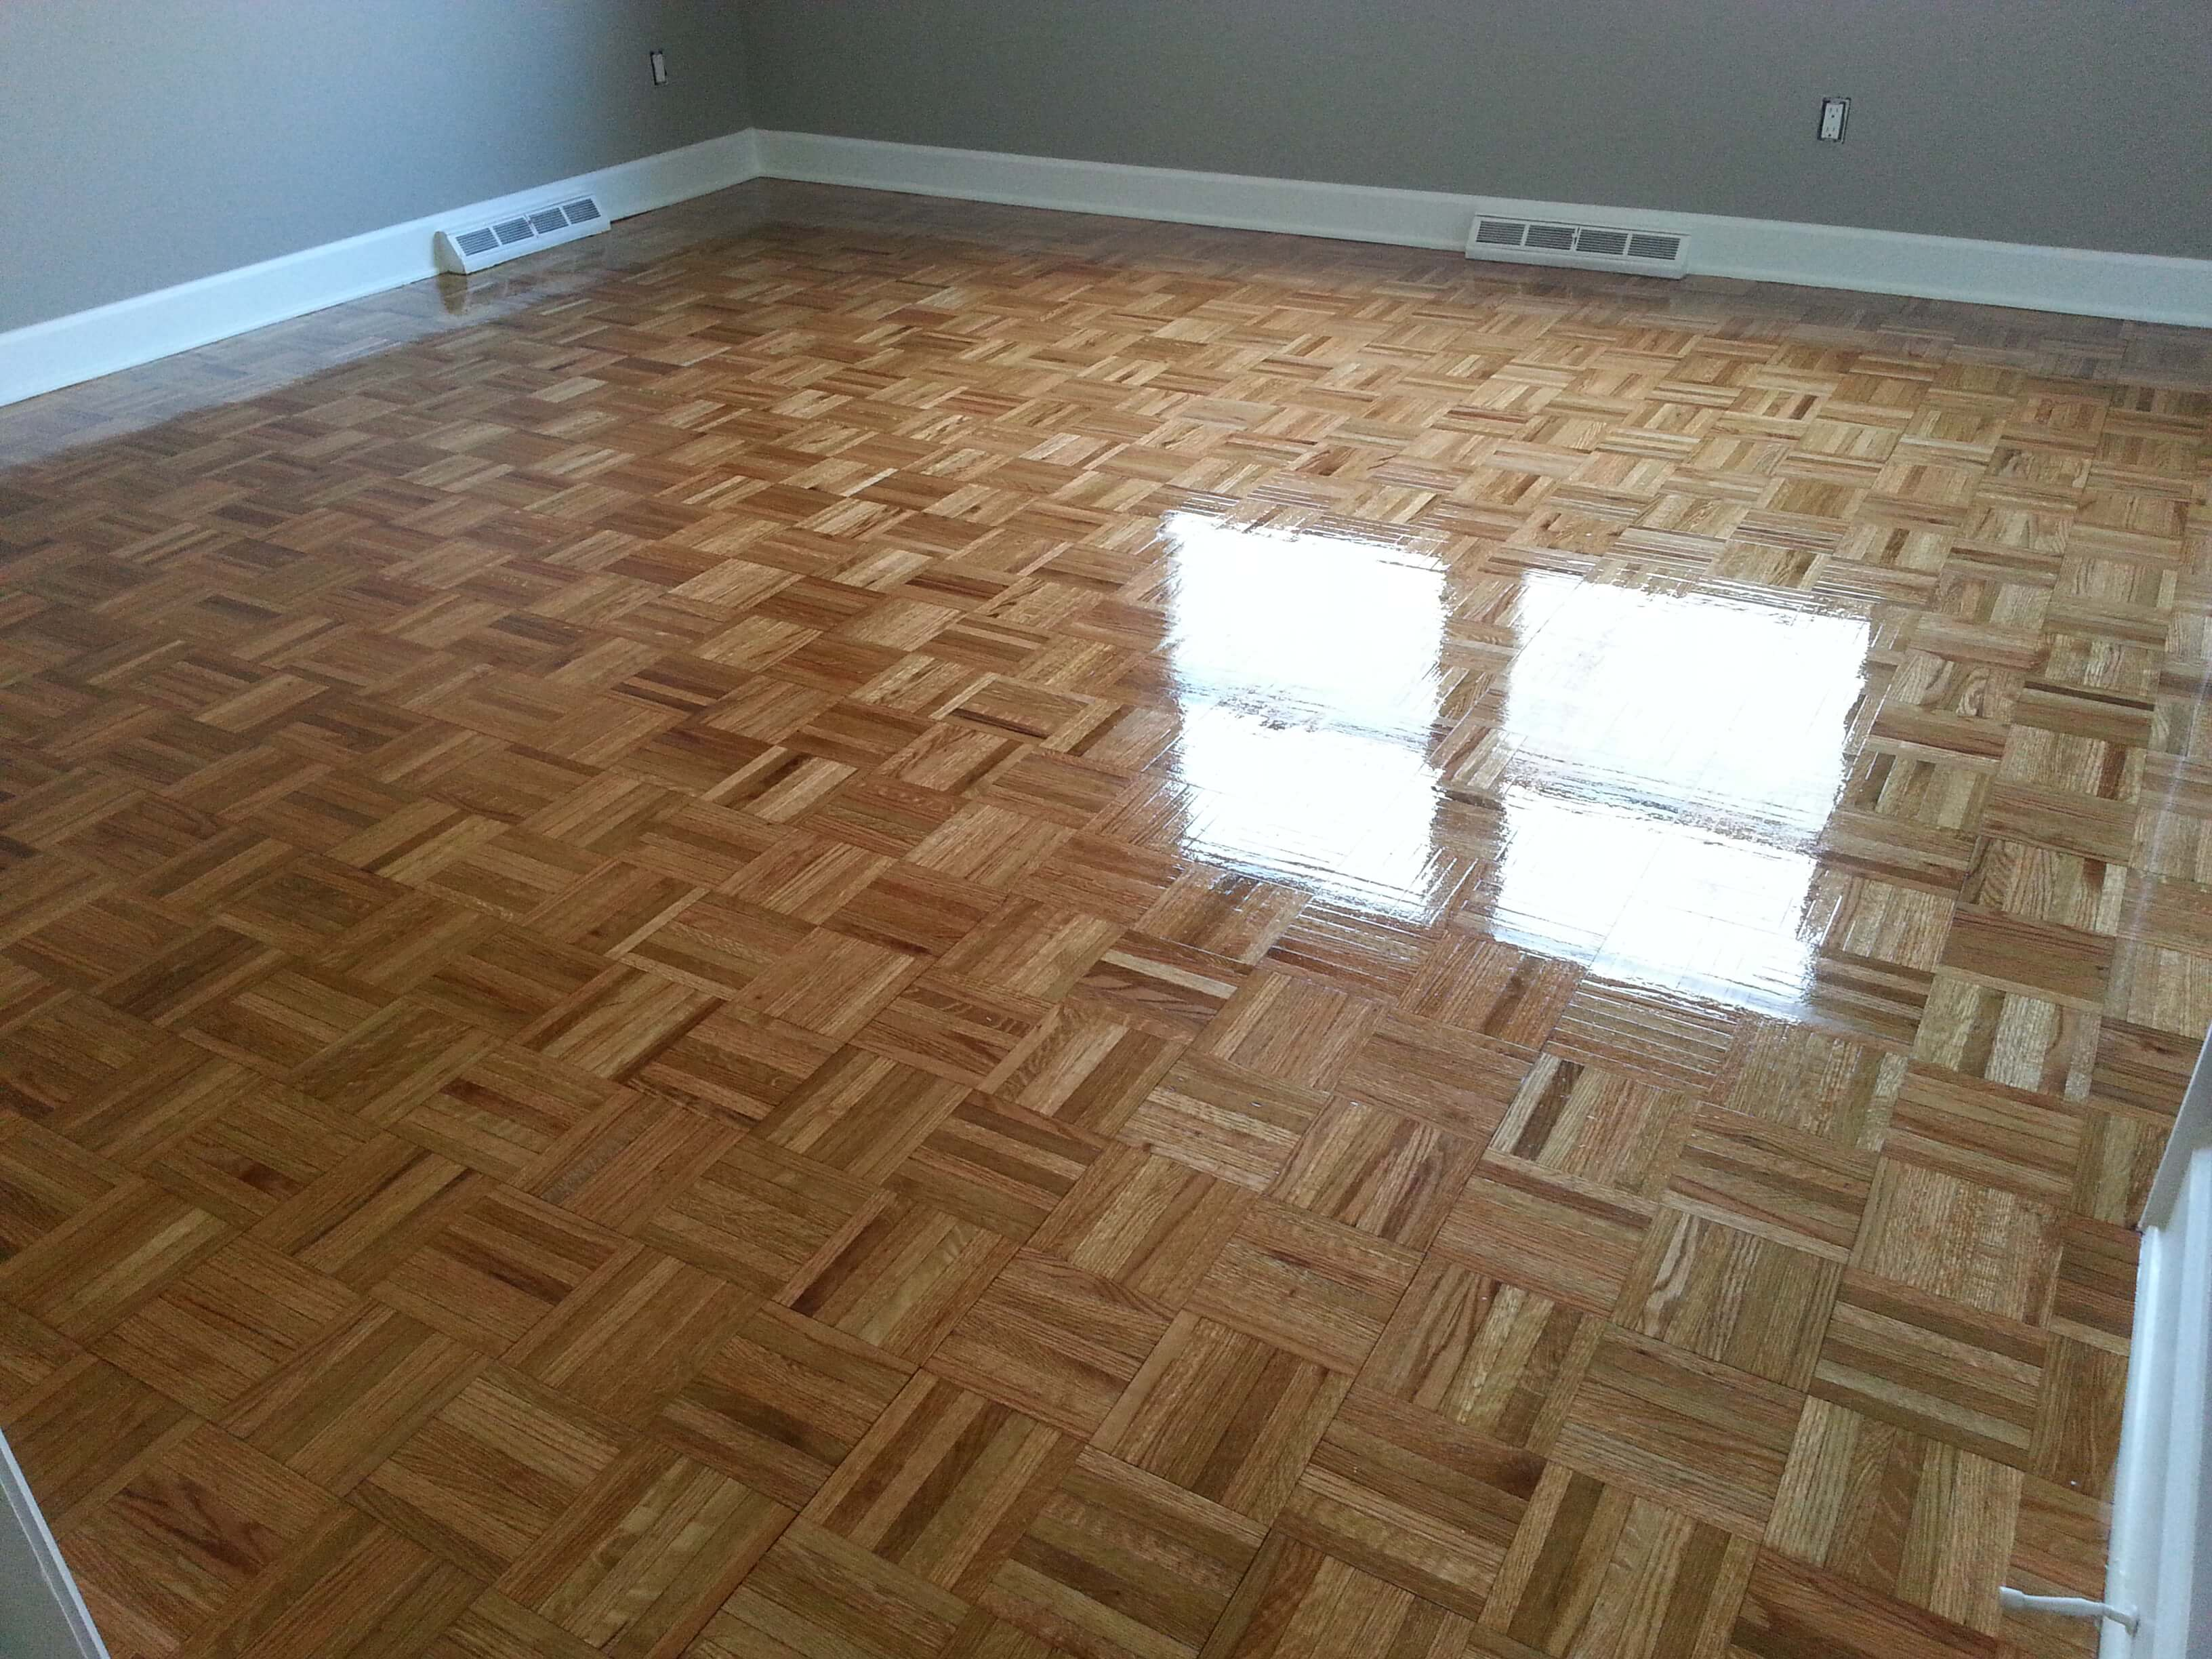 a refinished parquet wood floor done by fabulous floors nashville.